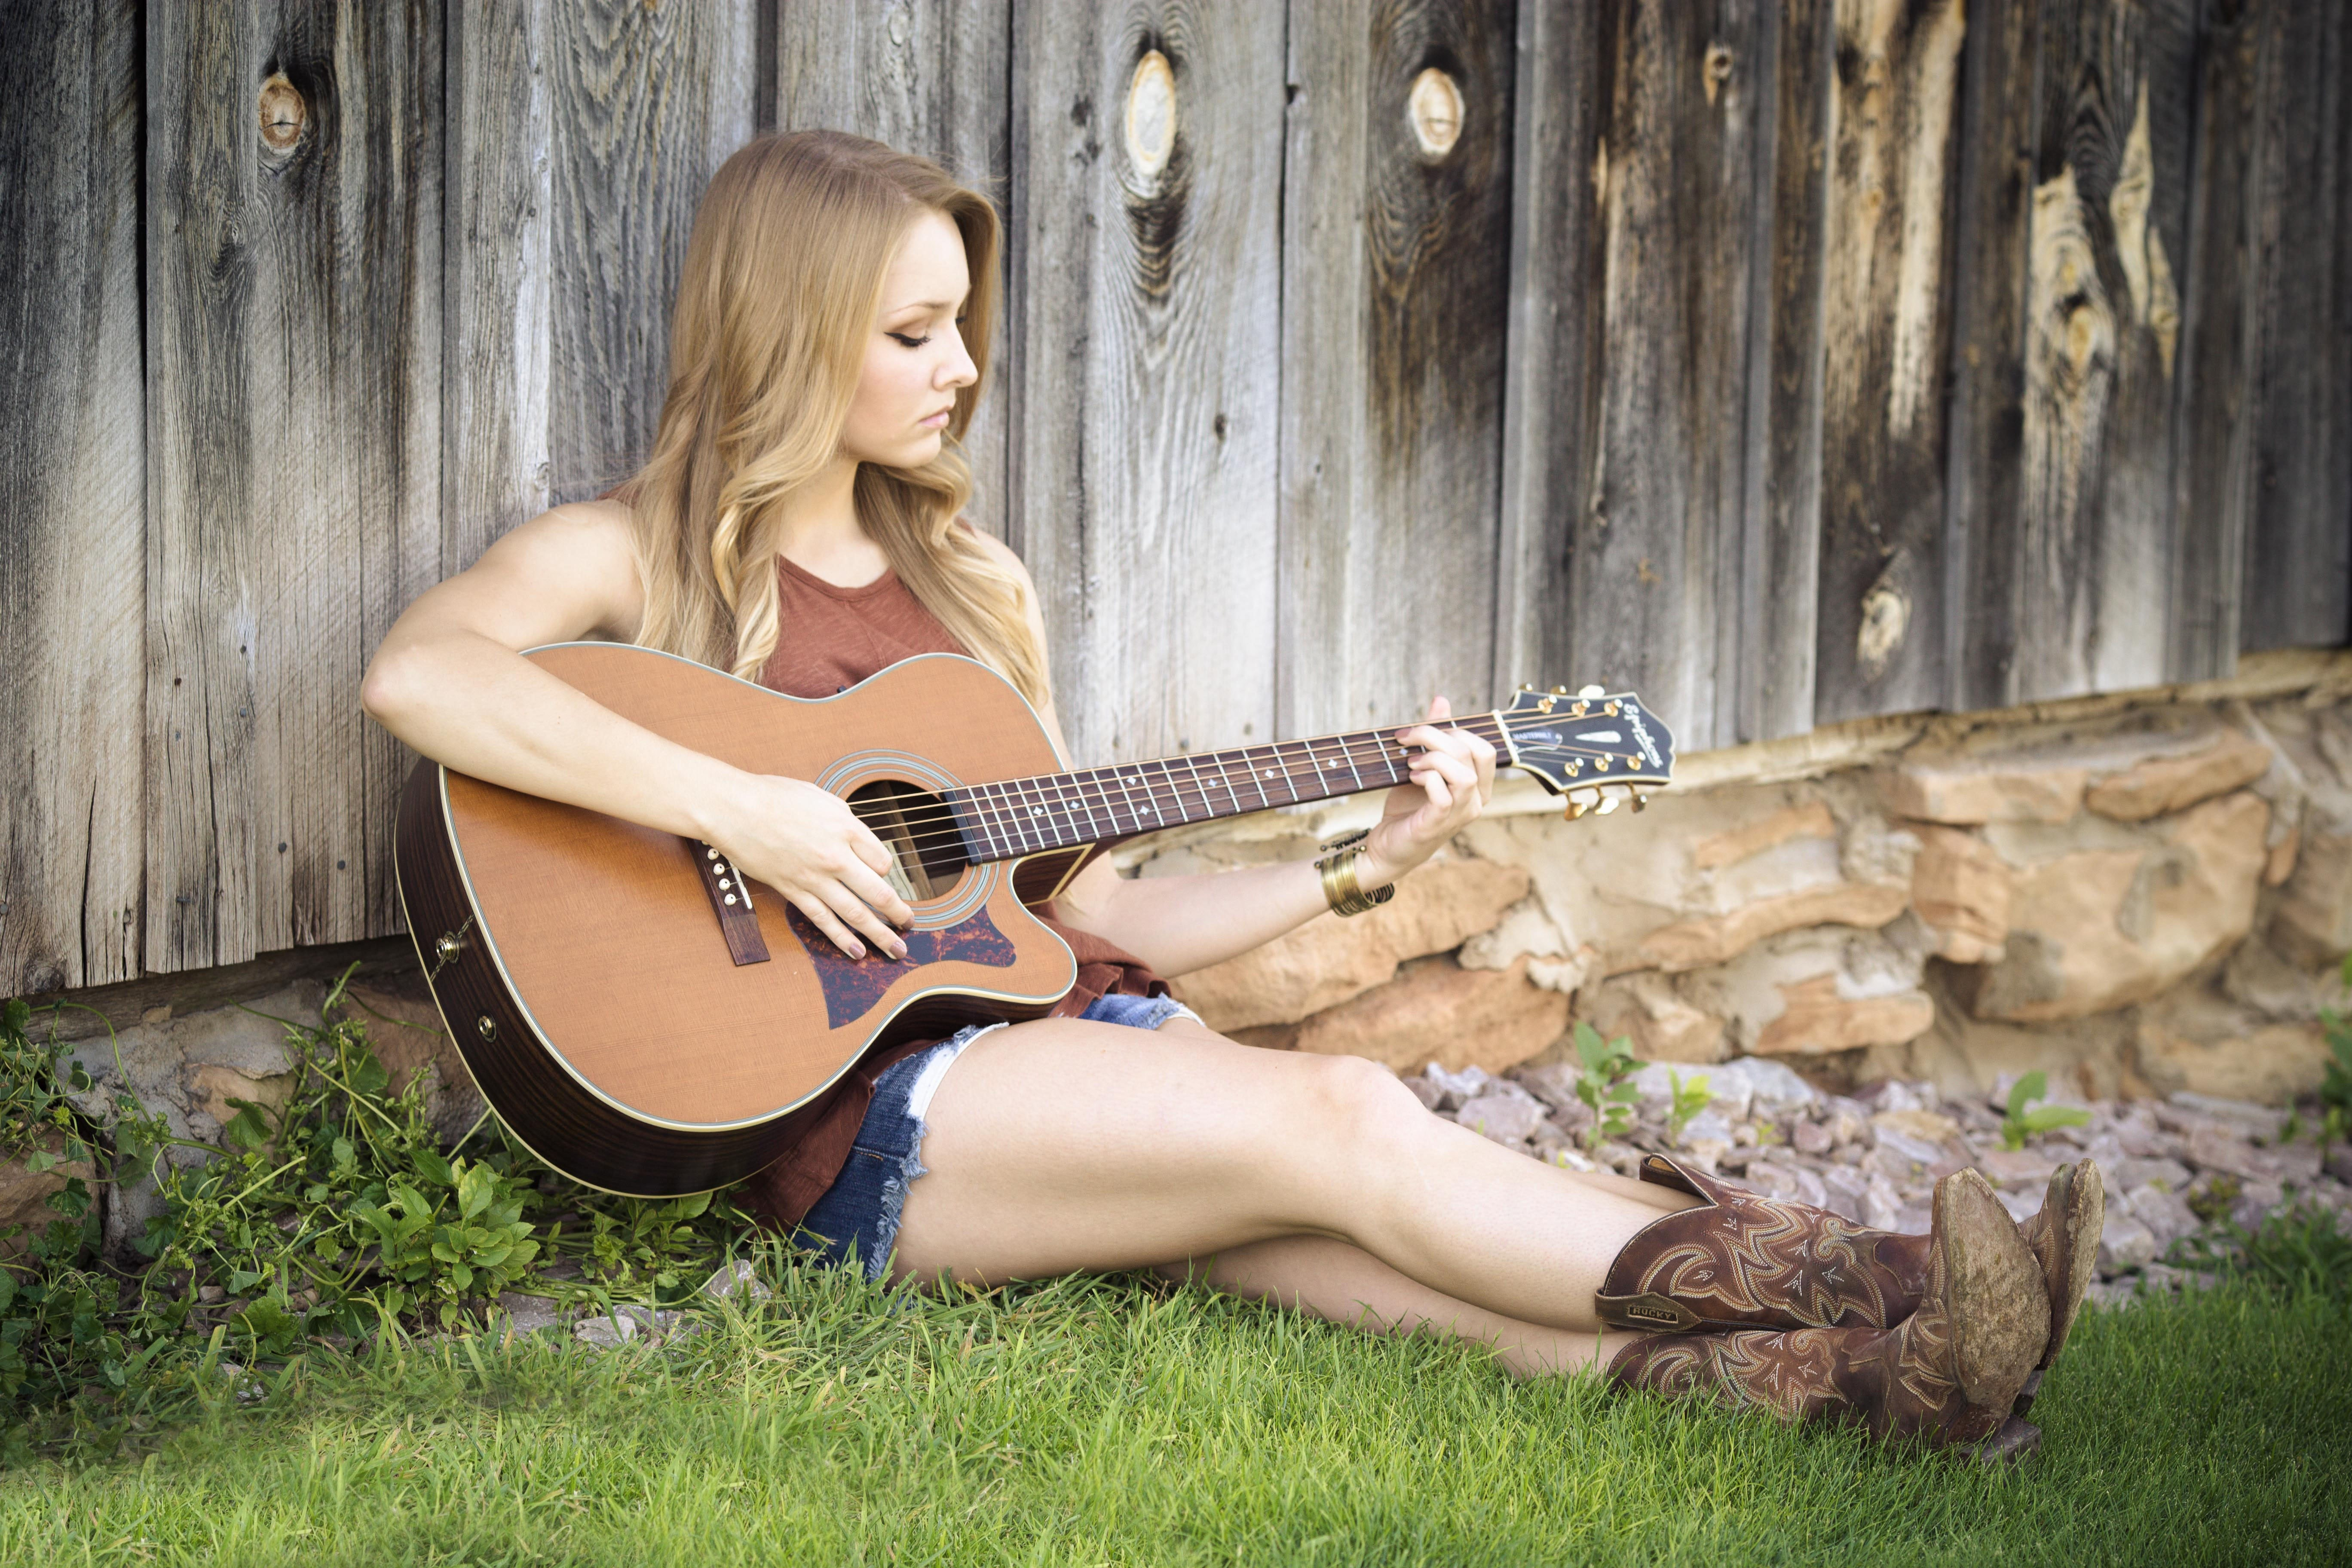 Woman in brown tank top with acoustic guitar sitting on green grass beside brown wooden fence photo